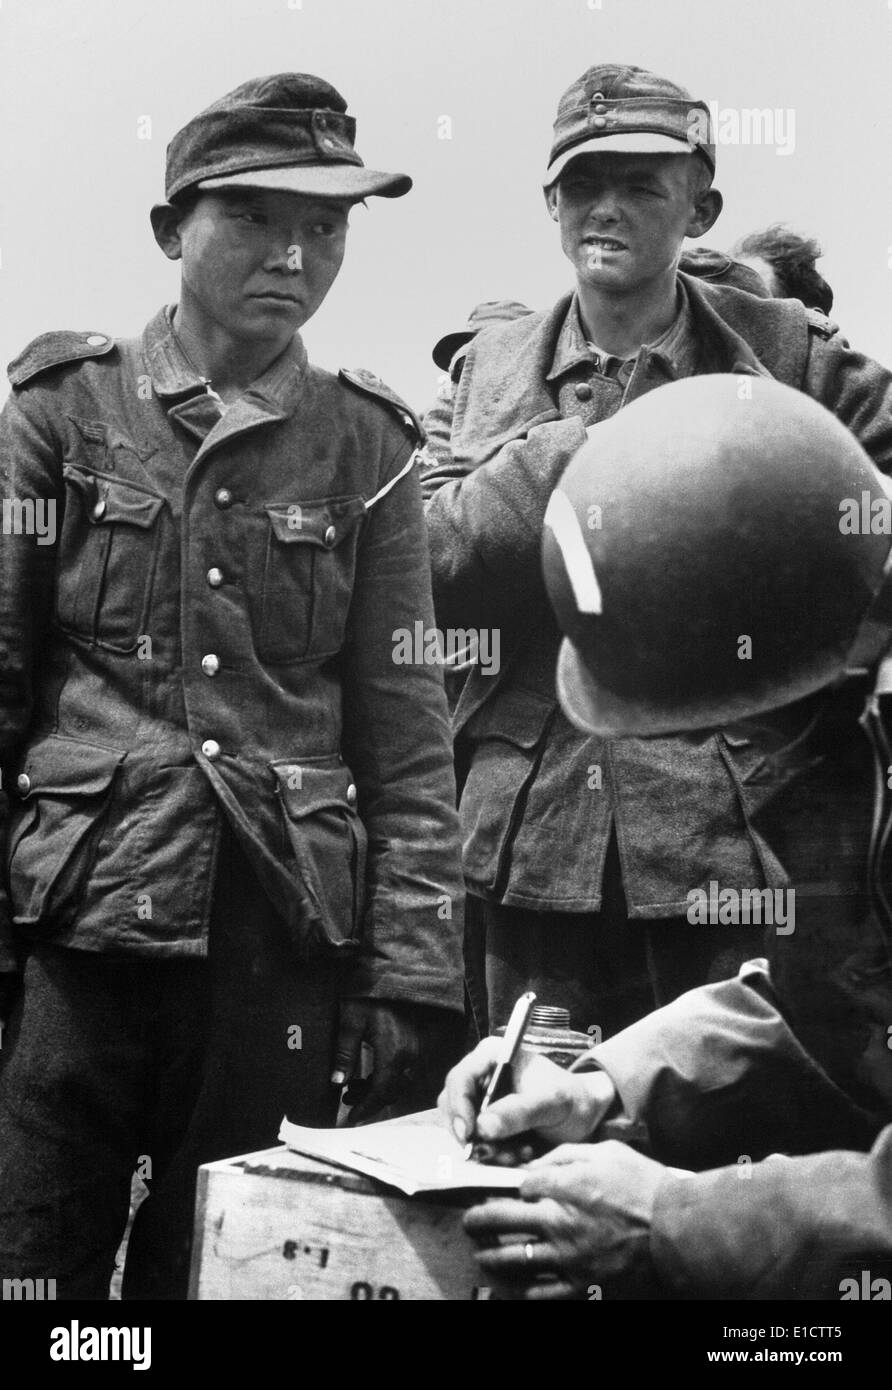 Japanese youth, wearing a Nazi uniform, was among German prisoners captured on the beaches of France. American Army Stock Photo